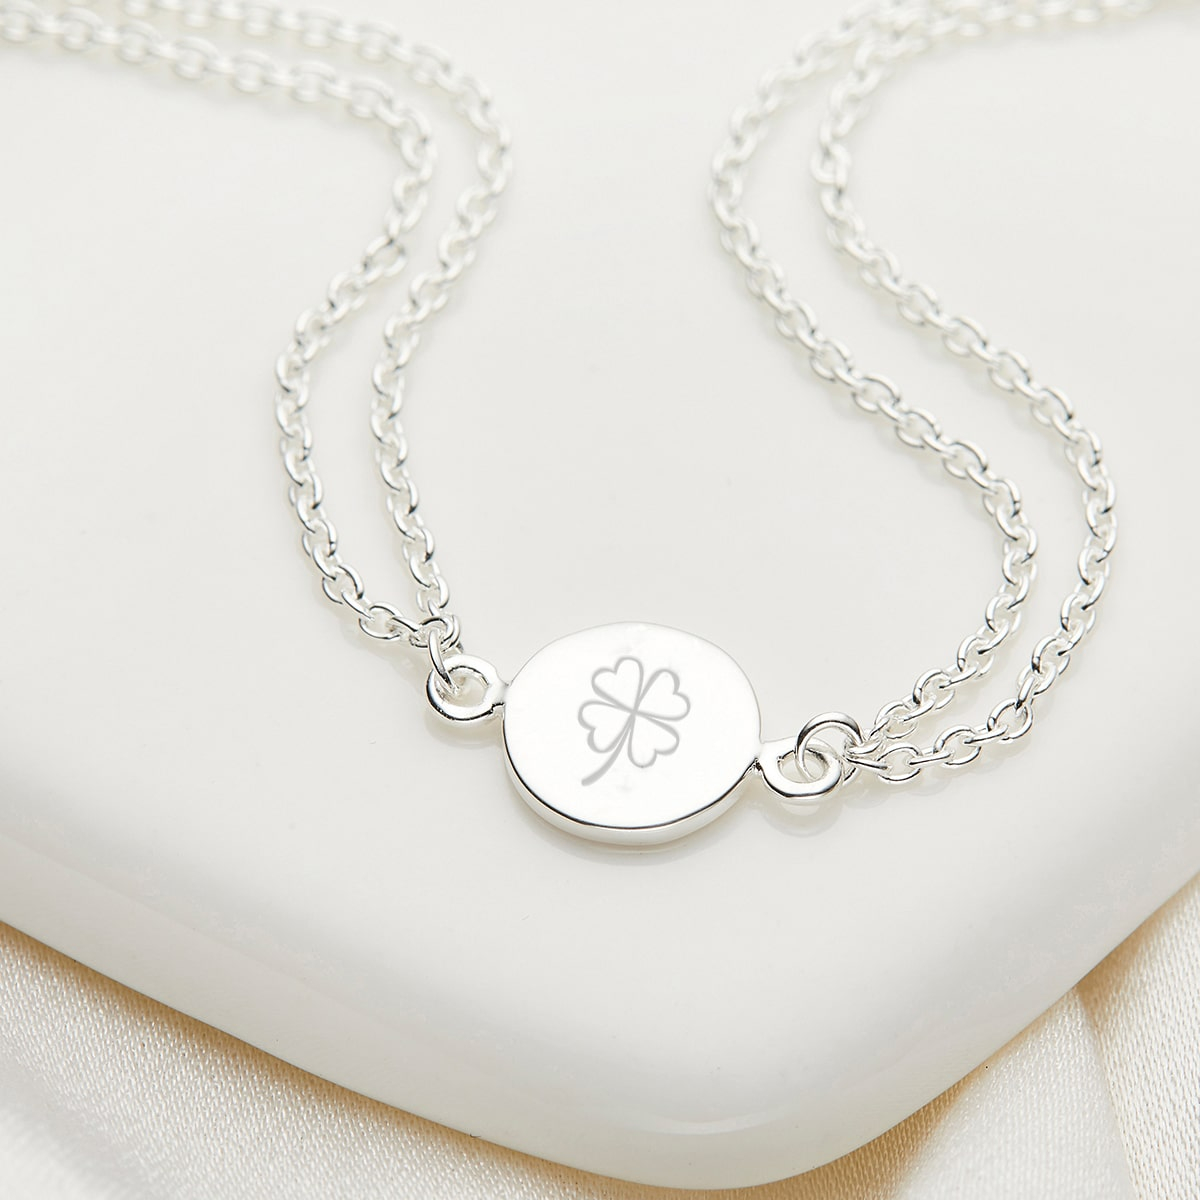 Personalised Her World Bracelet - SYMBOL ENGRAVING